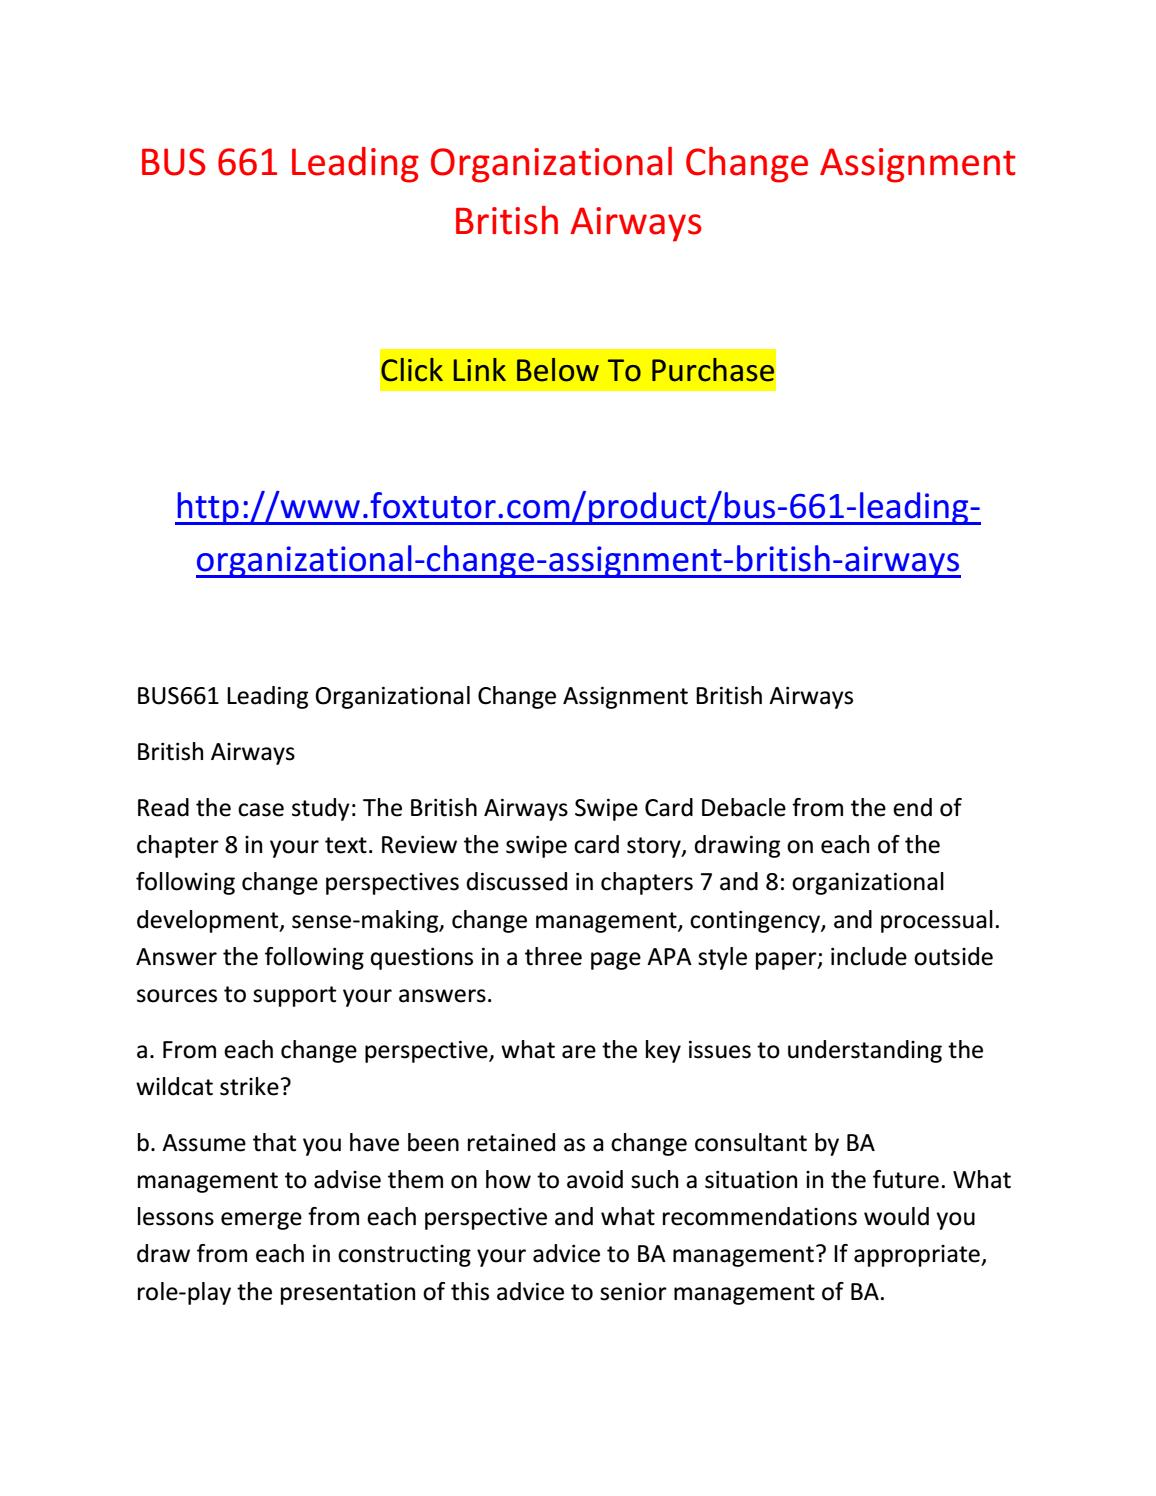 change management case study assignment